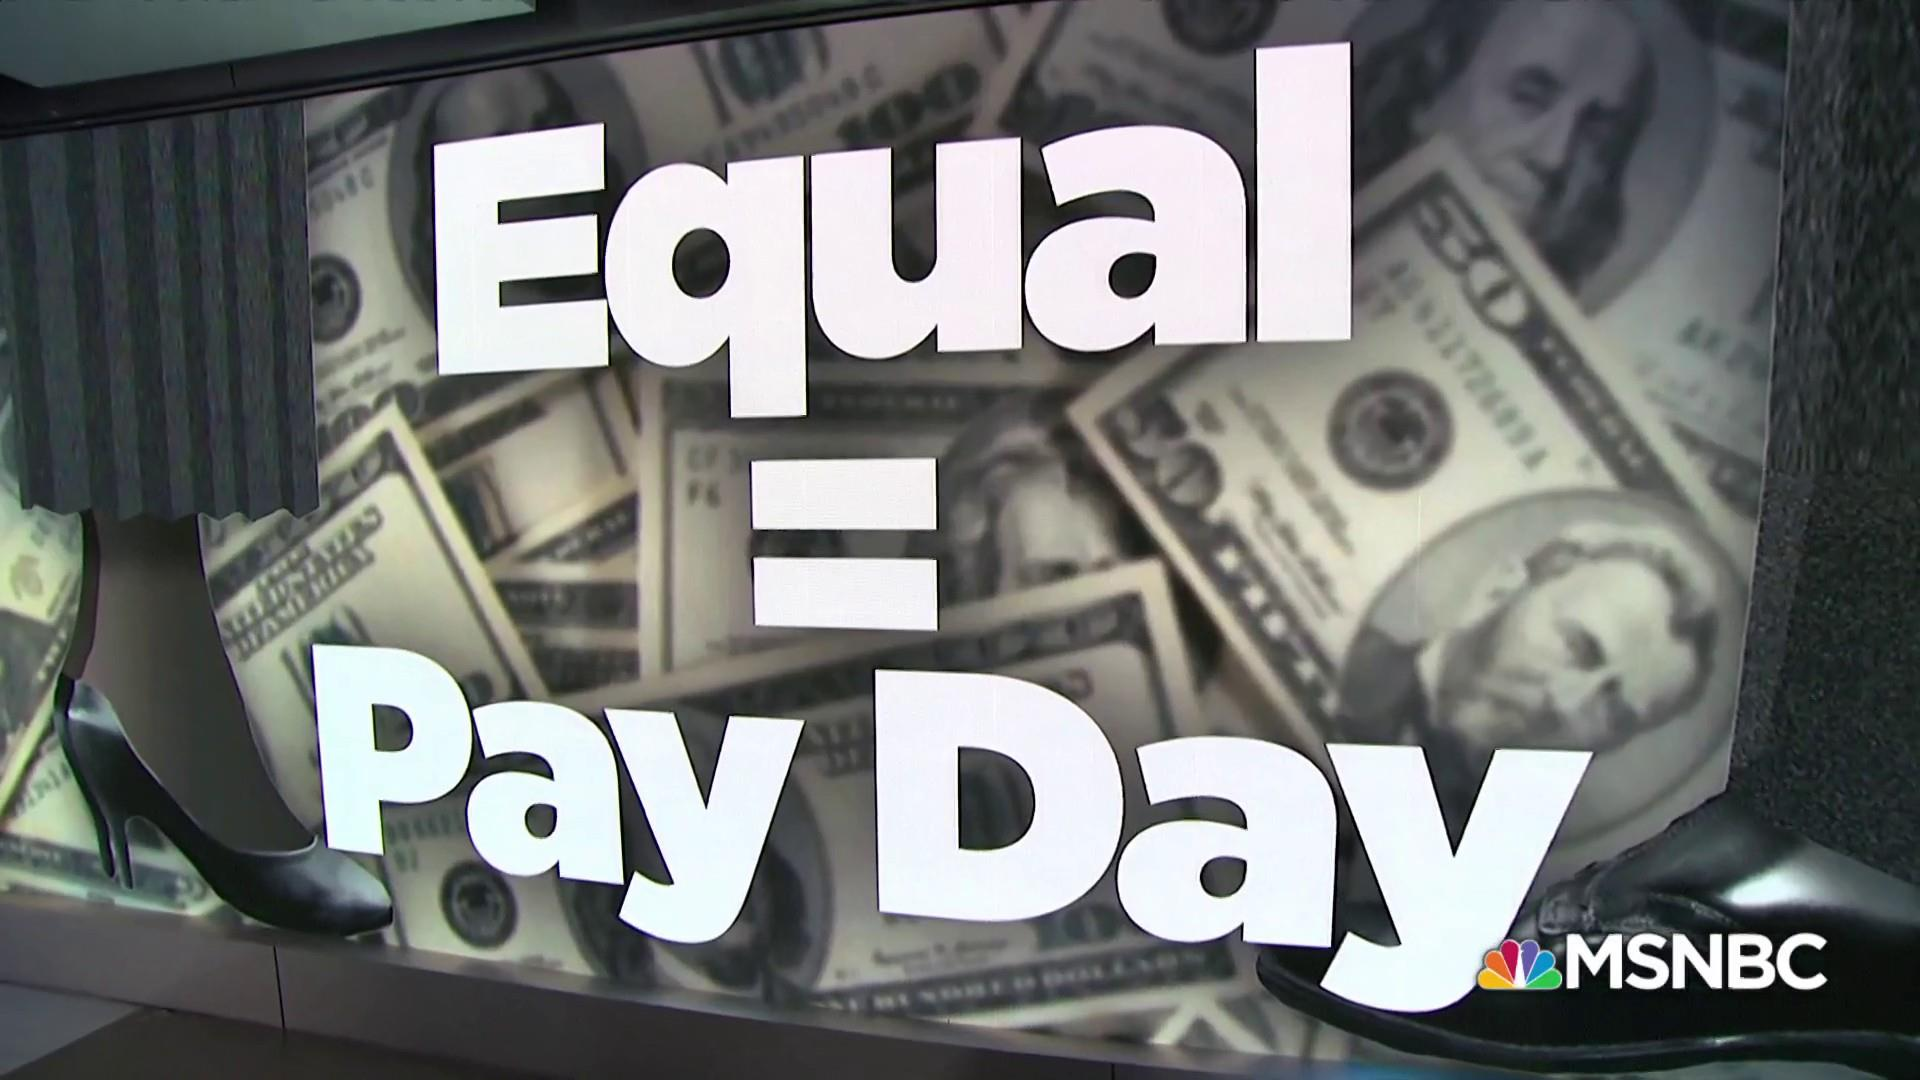 Why nothing has made a difference in the gender pay gap